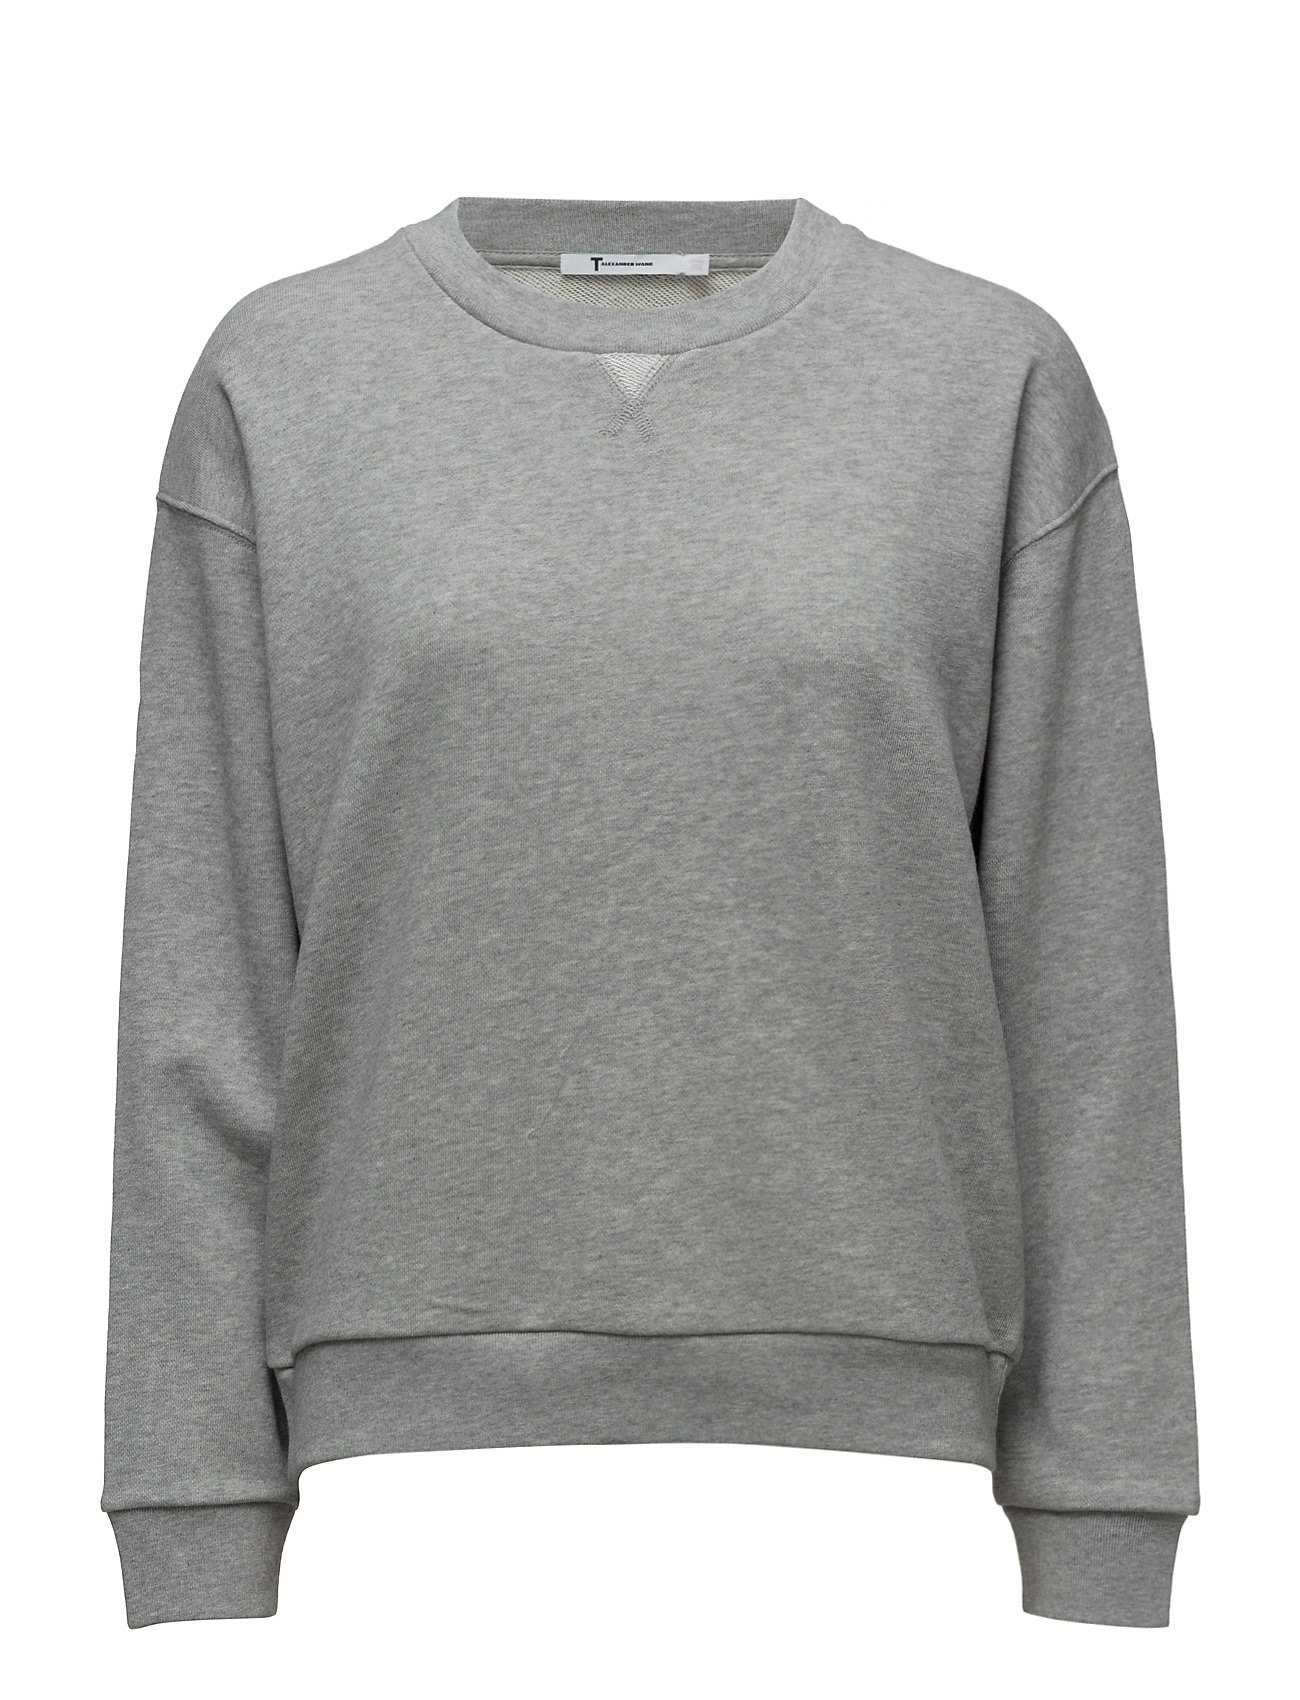 t by alexander wang Soft french terry sweatshirt på boozt.com dk